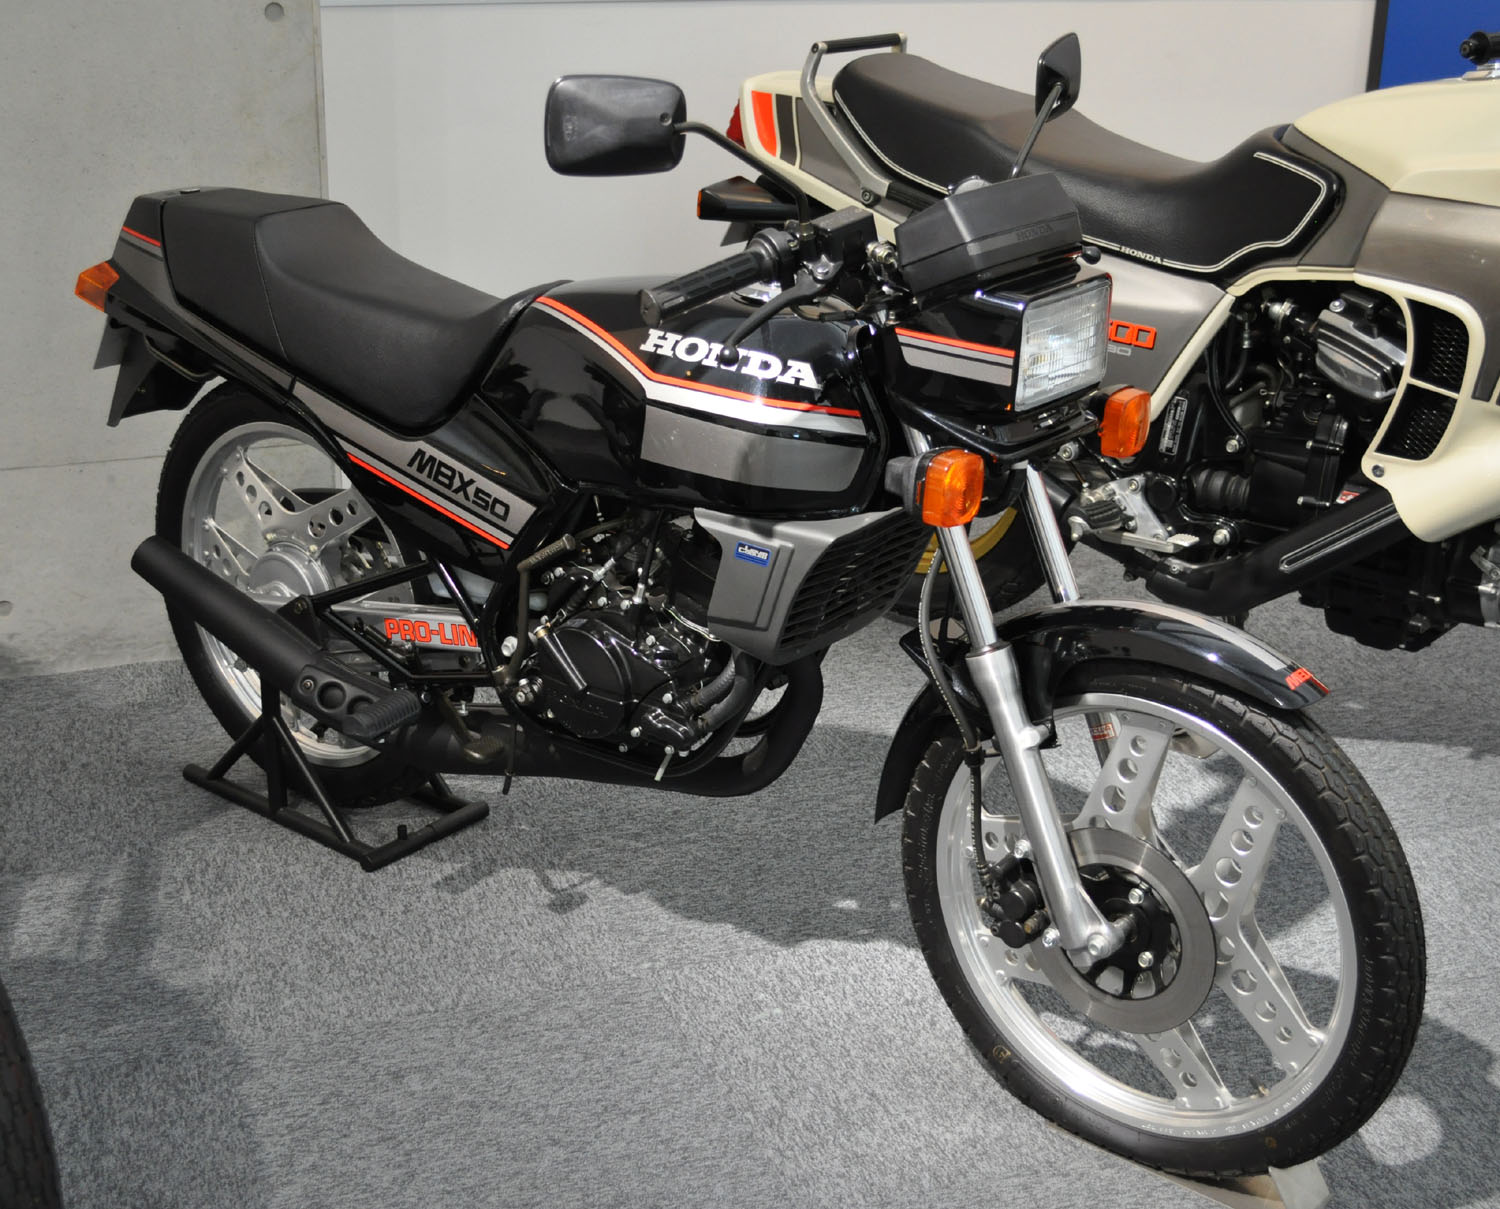 Honda Build And Price >> File:Honda MBX50.jpg - Wikimedia Commons